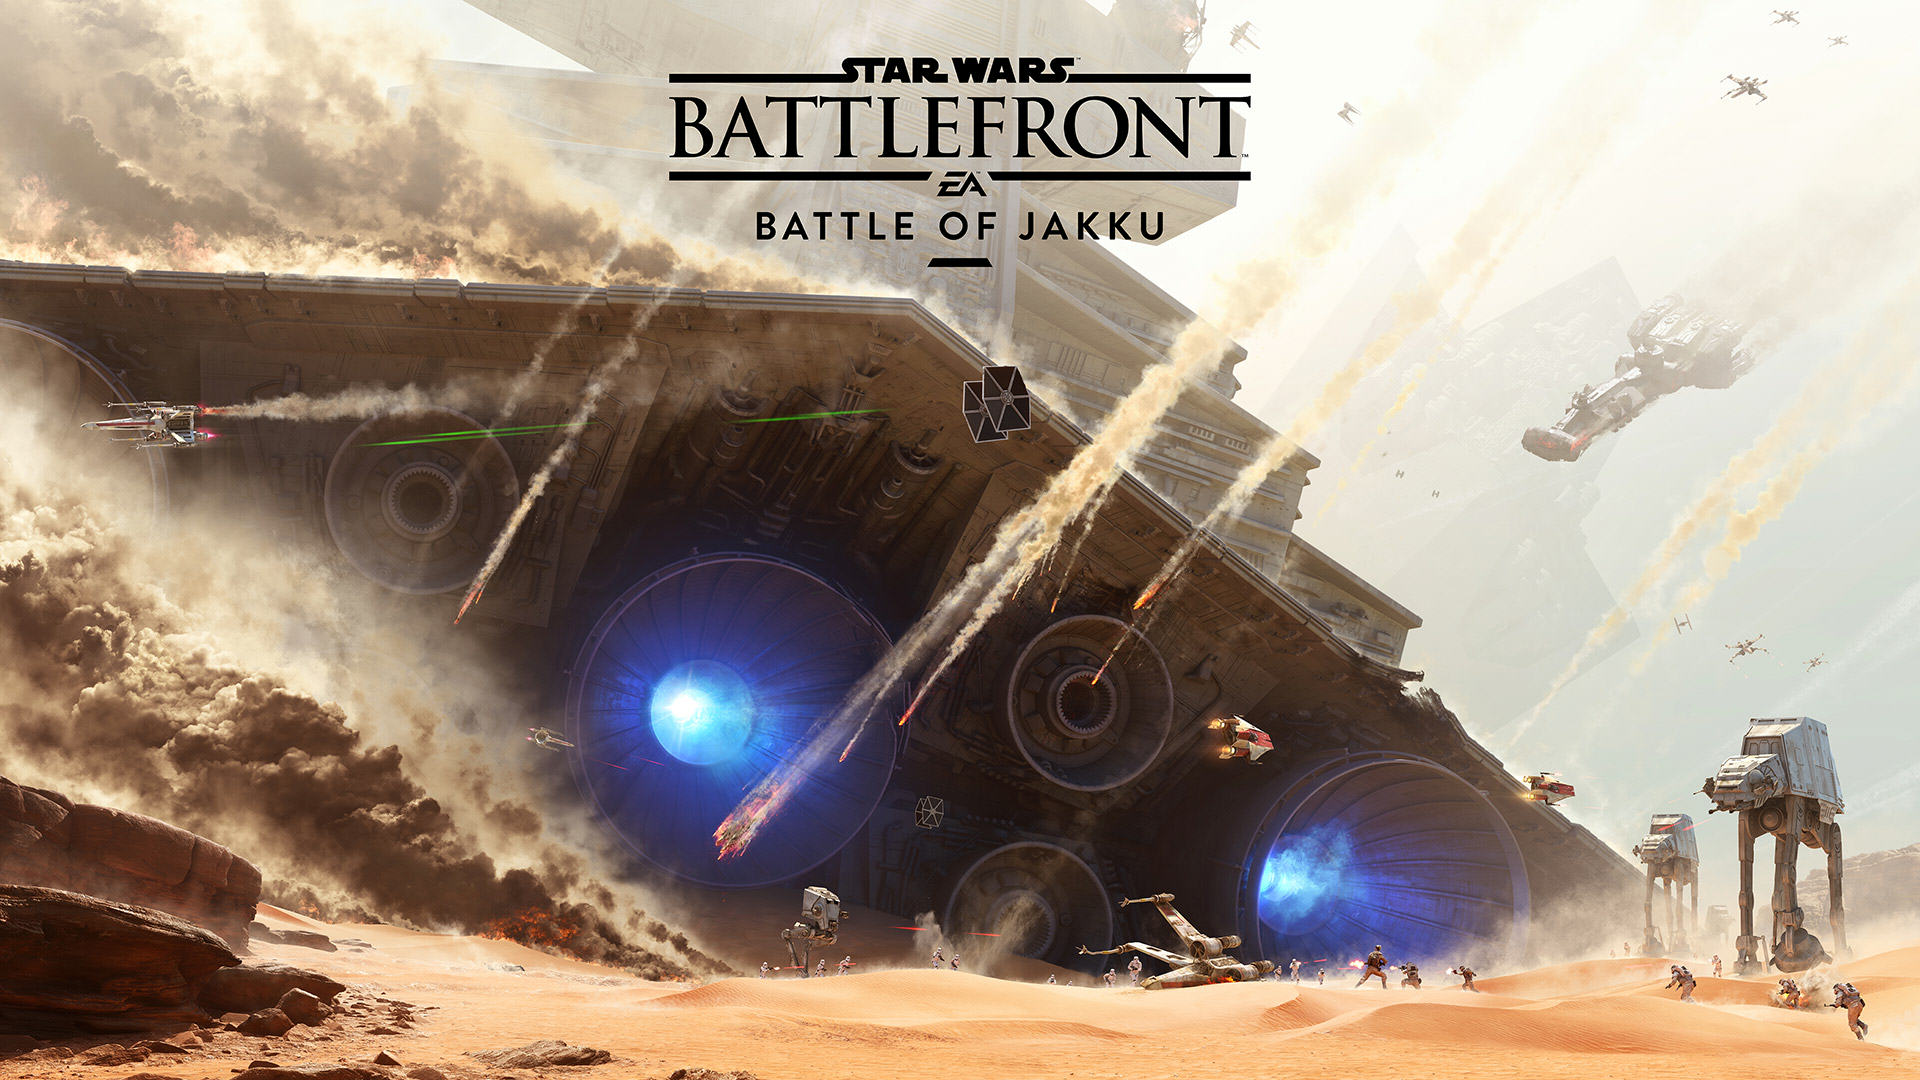 featuredImage.img  Star Wars Battlefront Getting New 40 Player Mode With Free DLC